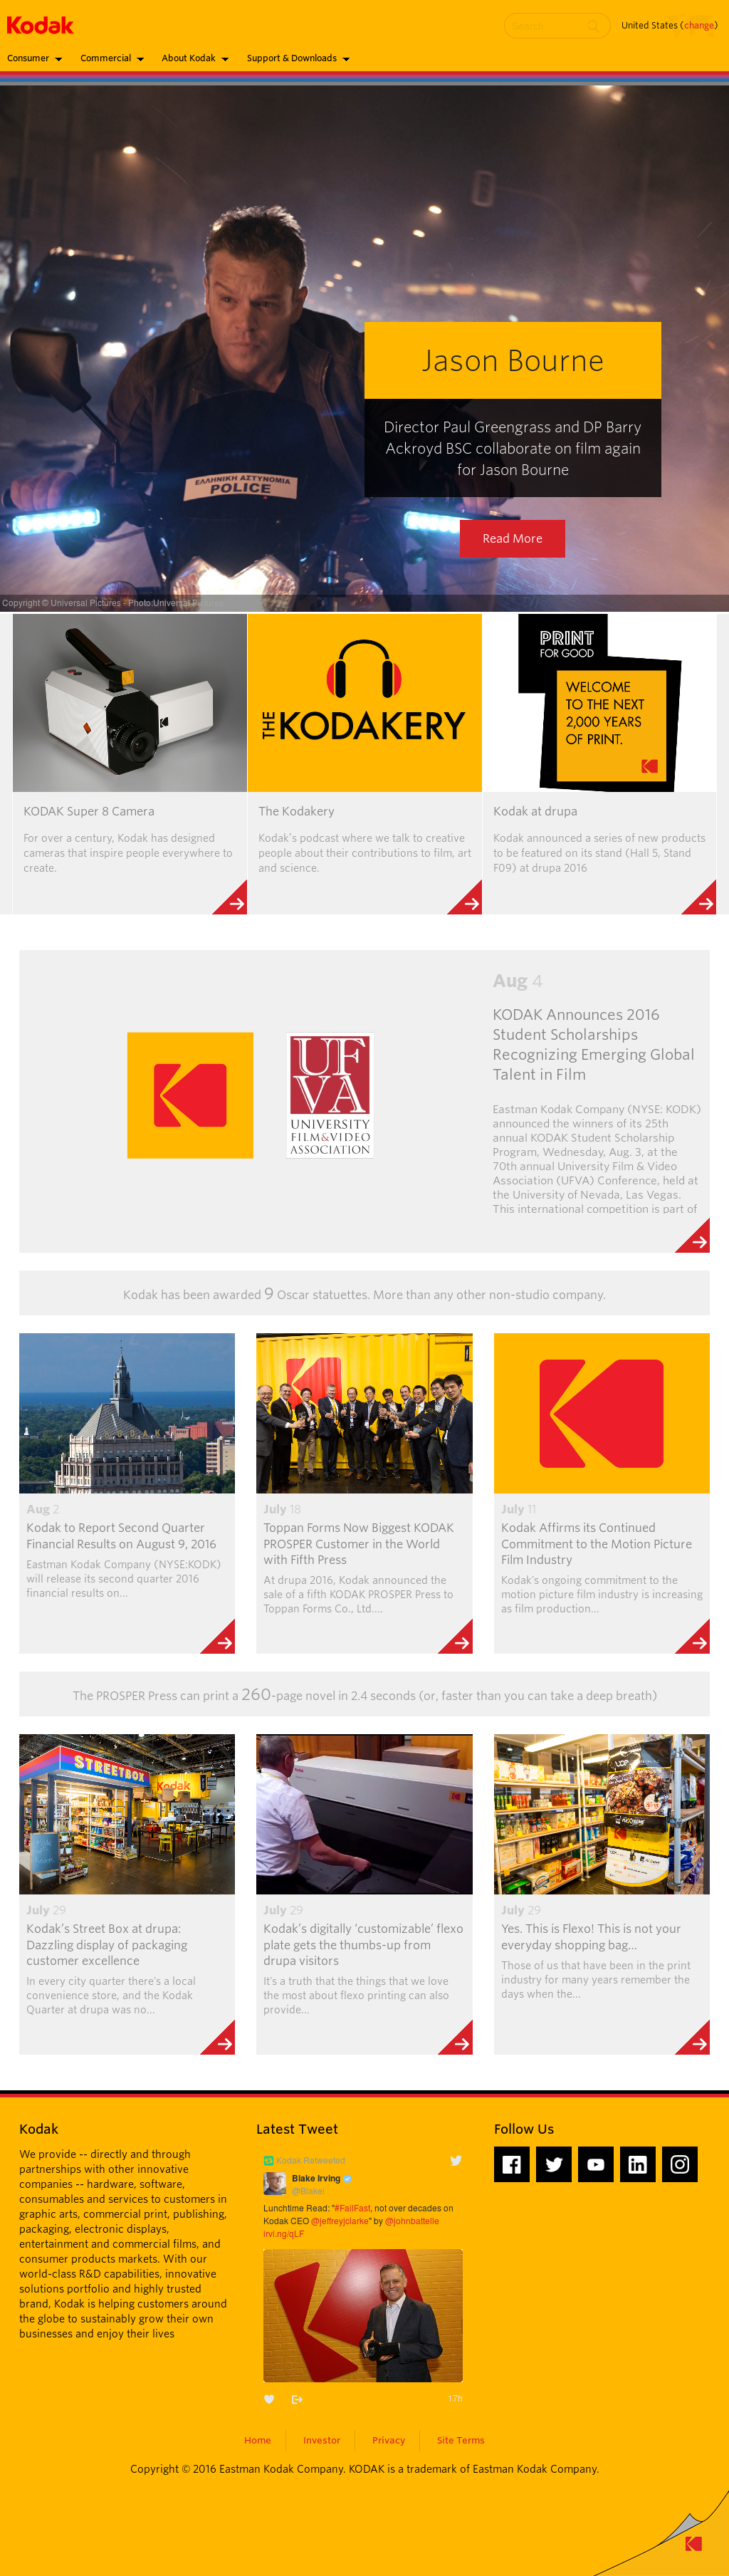 Kodak S Competitors Revenue Number Of Employees Funding Acquisitions News Owler Company Profile